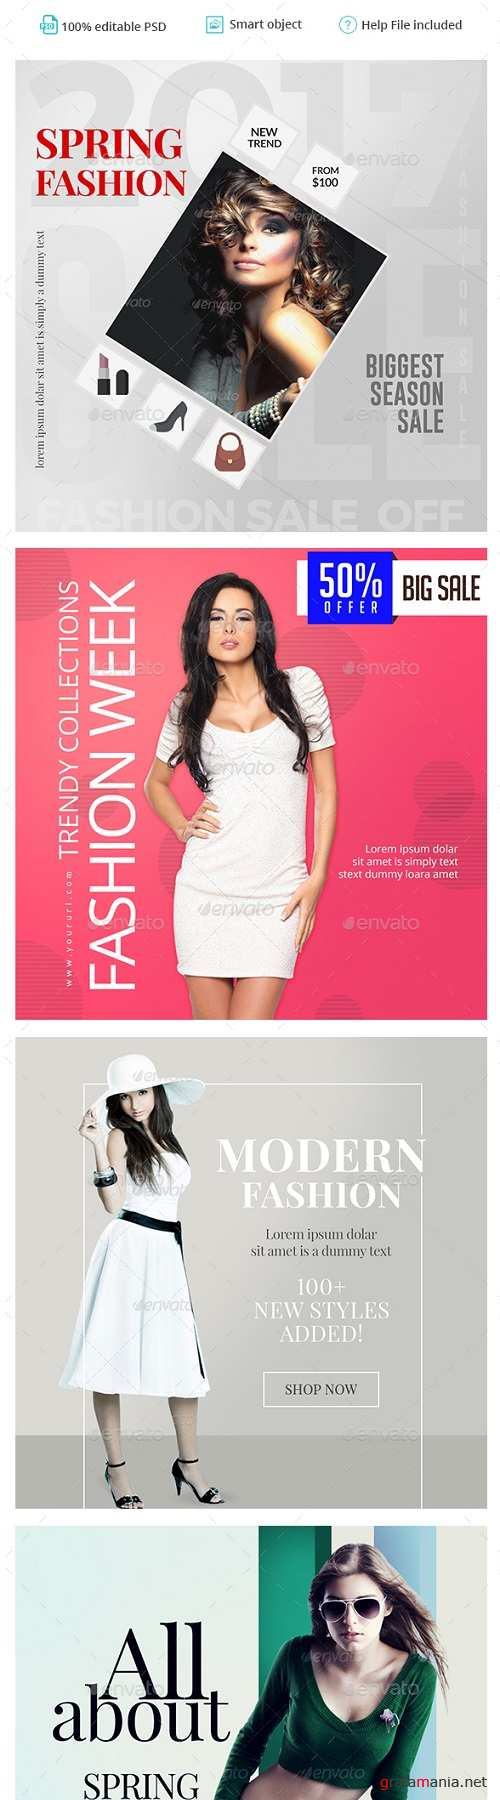 Fashion Instagram Templates - 4 Designs 20016656